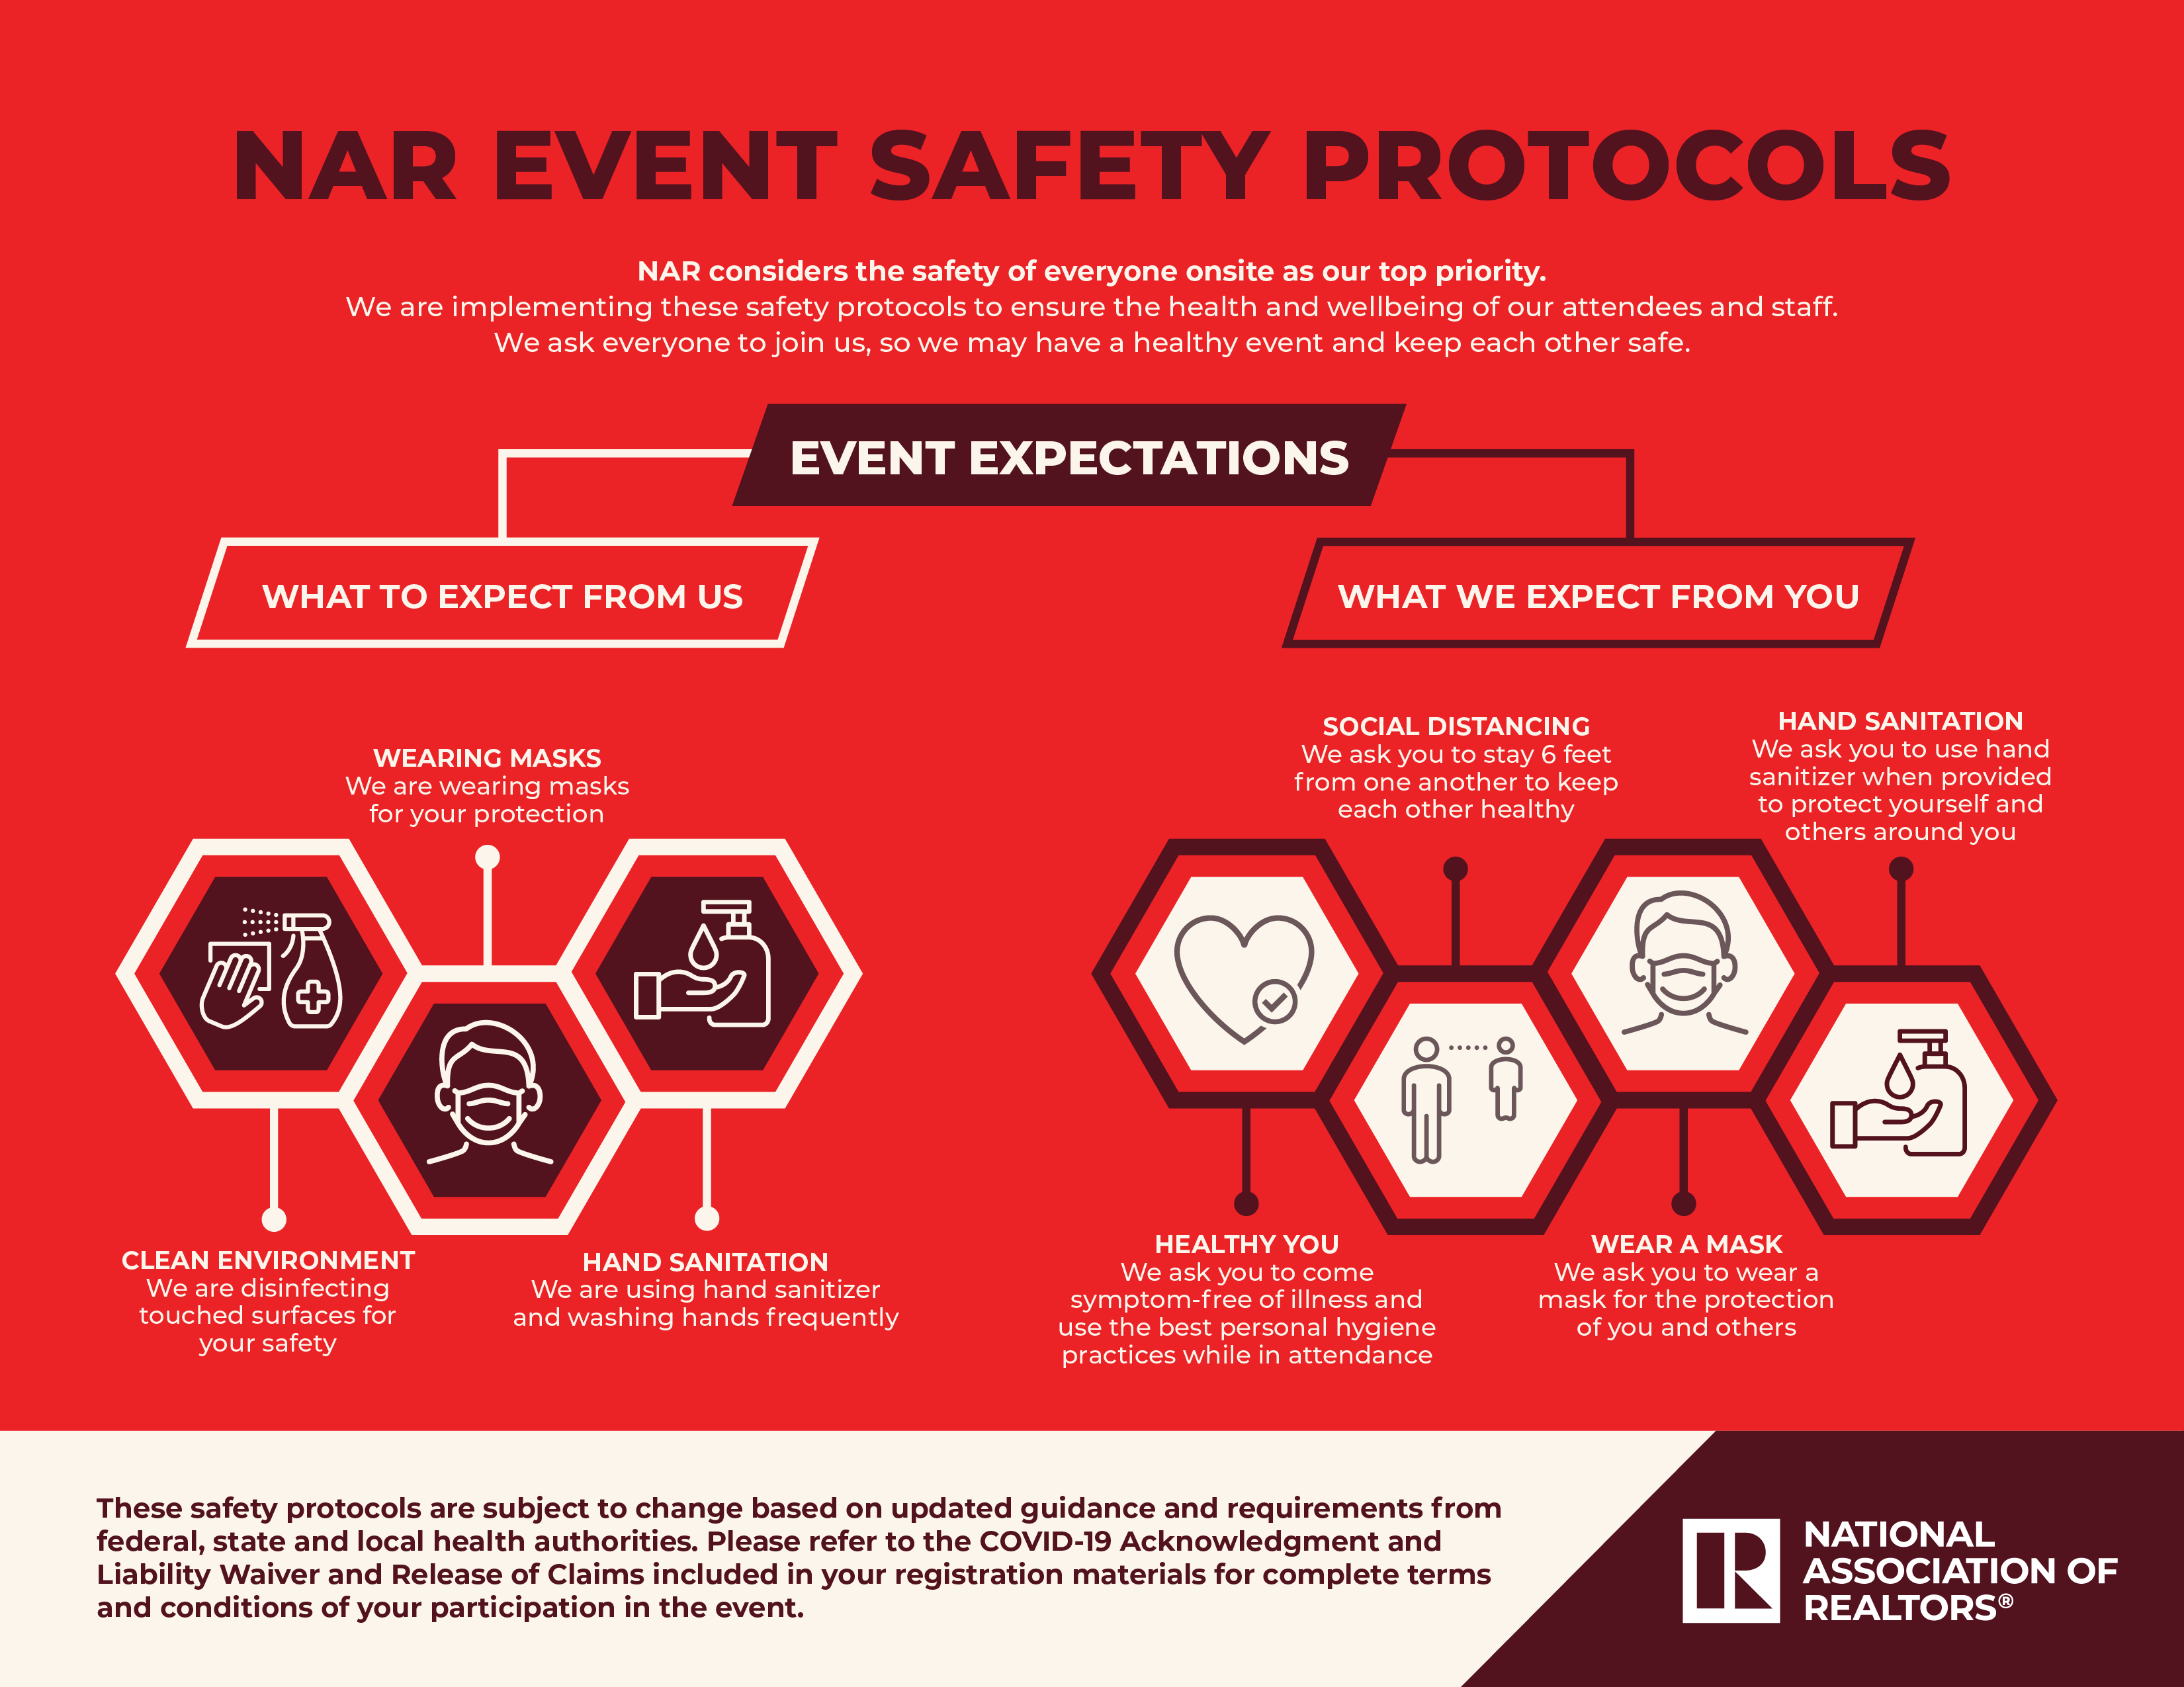 NAR Event Safety Protocols